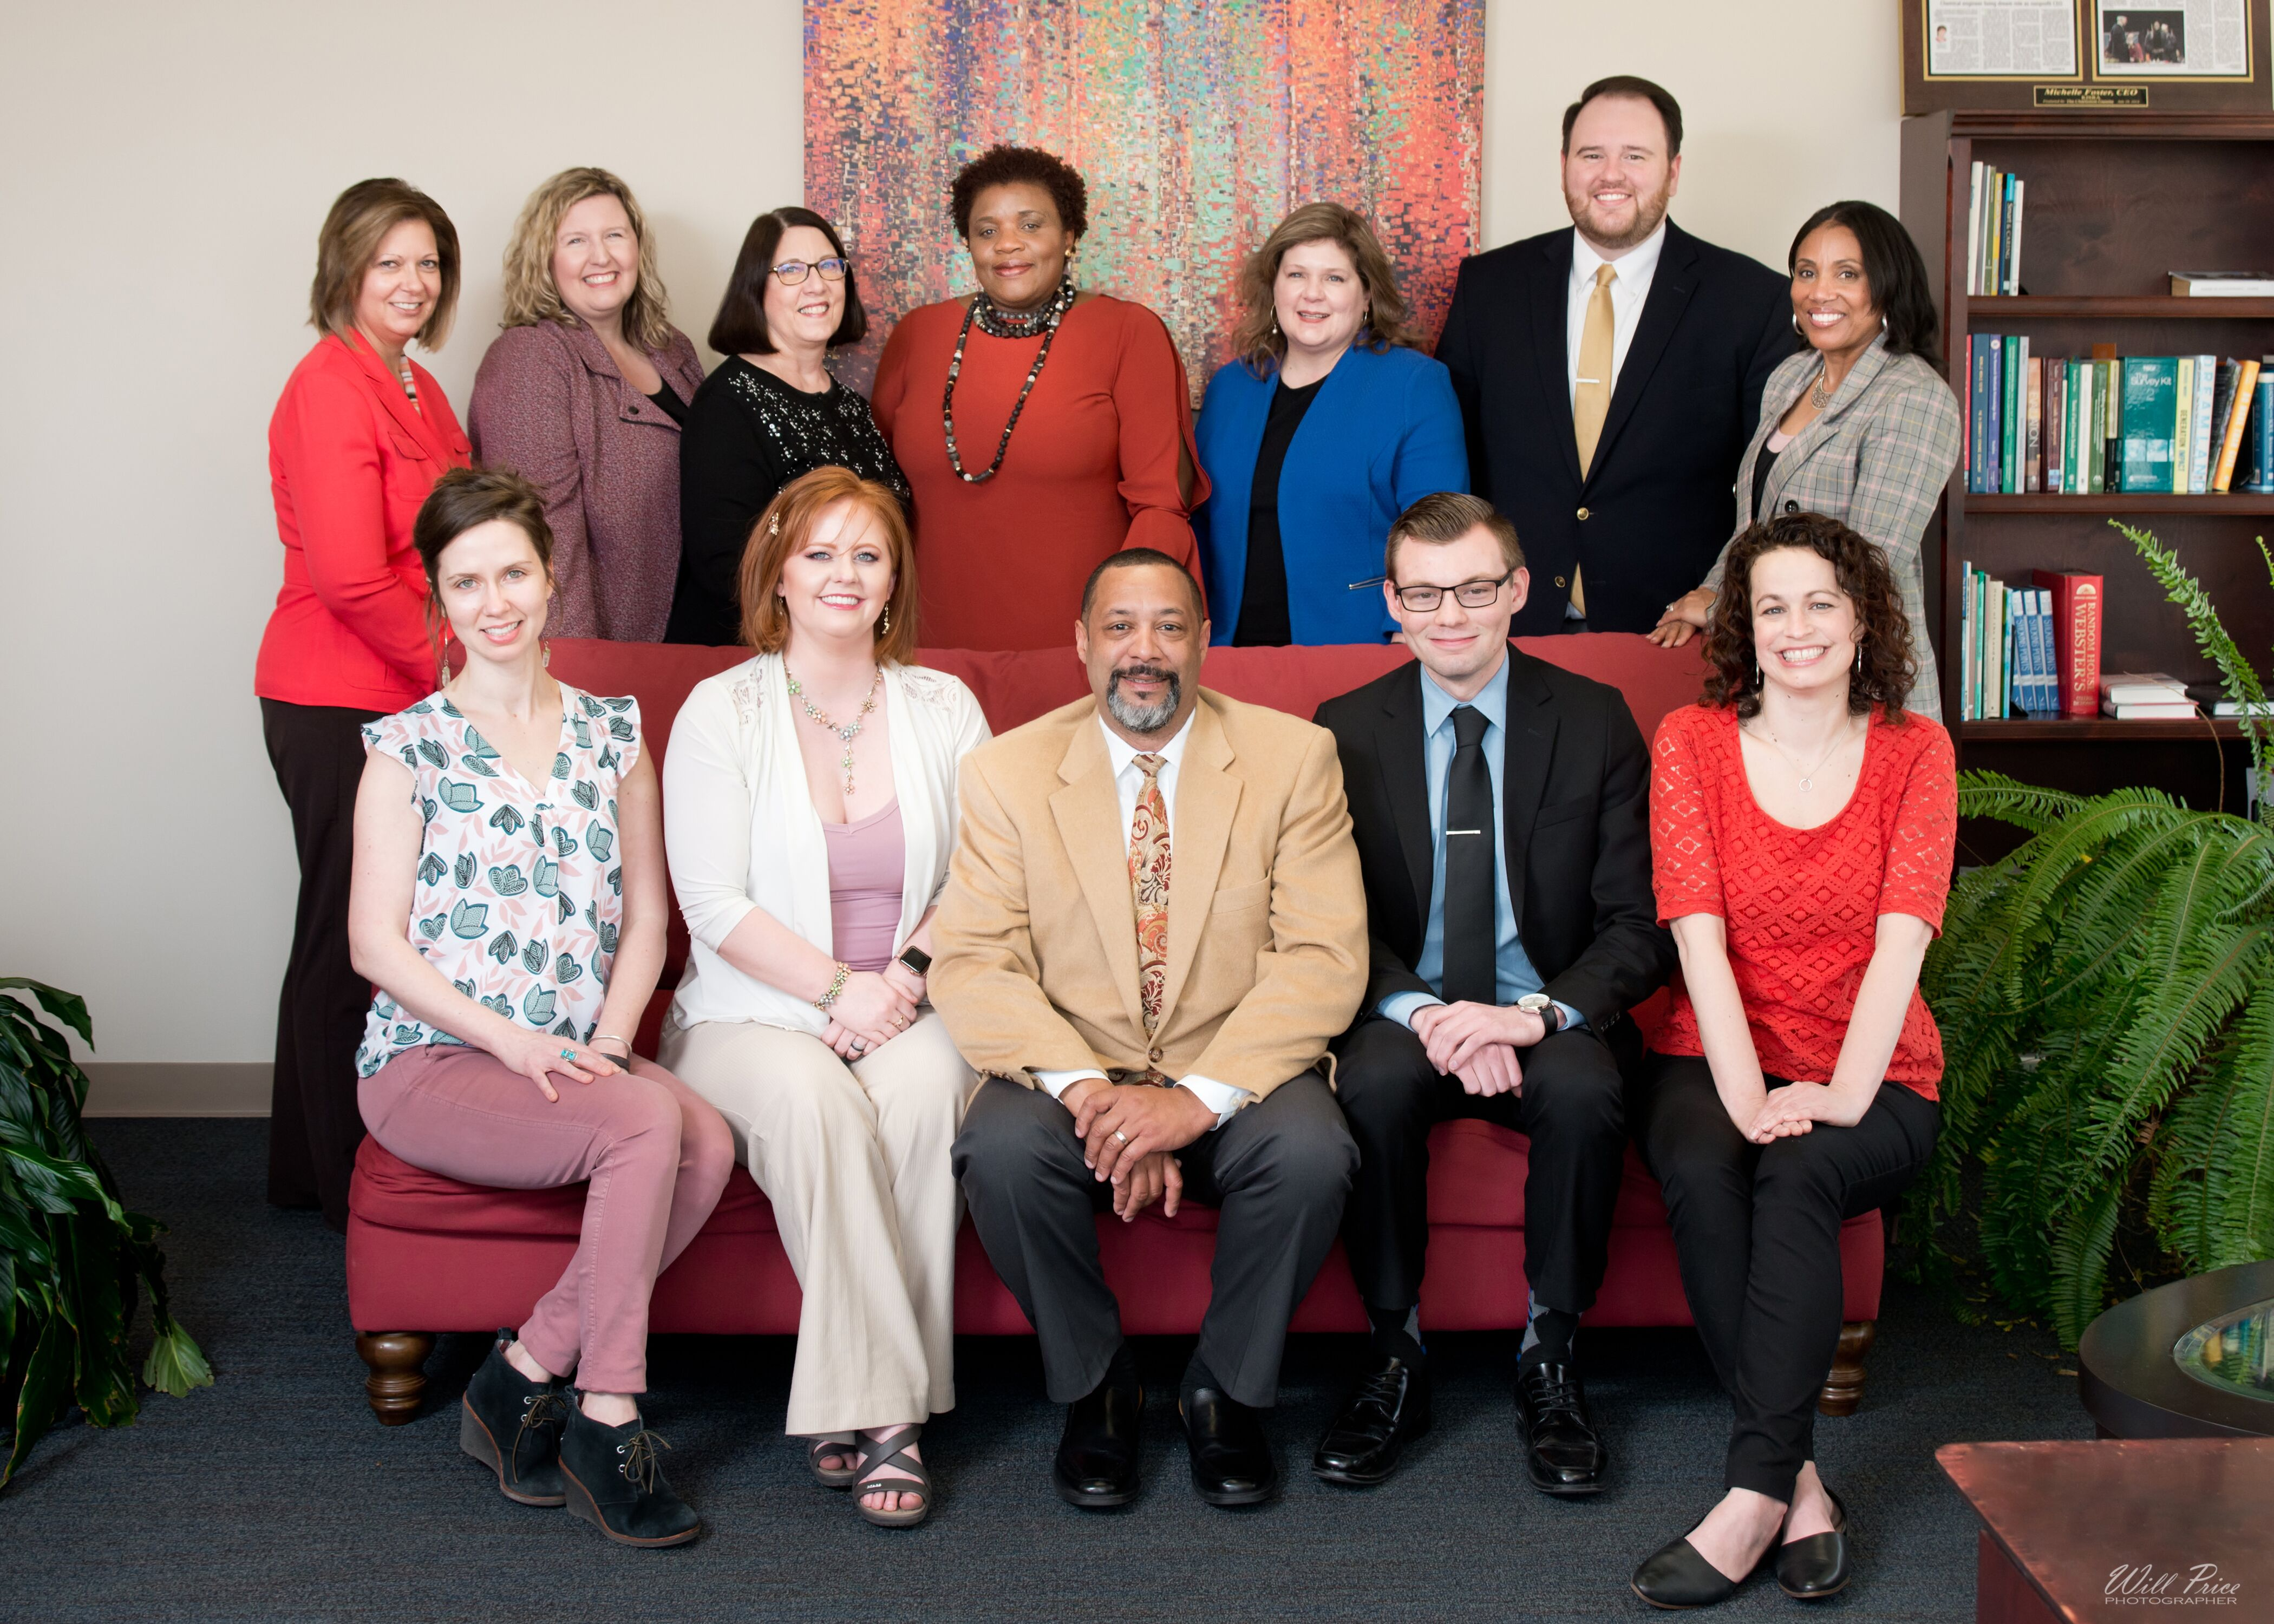 Foundation Staff - The Greater Kanawha Valley Foundation